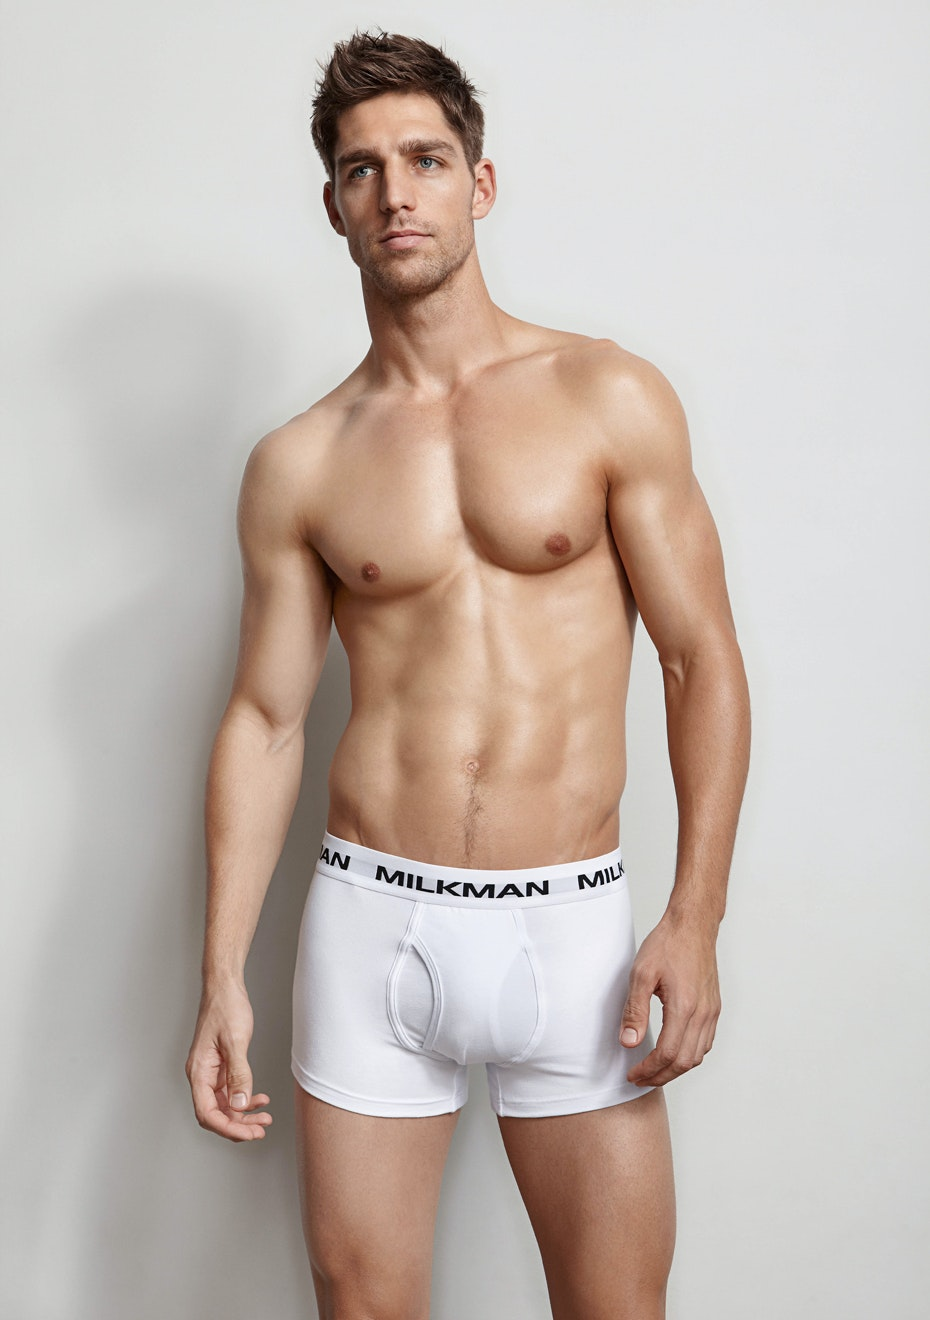 Milkman - Hardman Trunk 'White' Blond